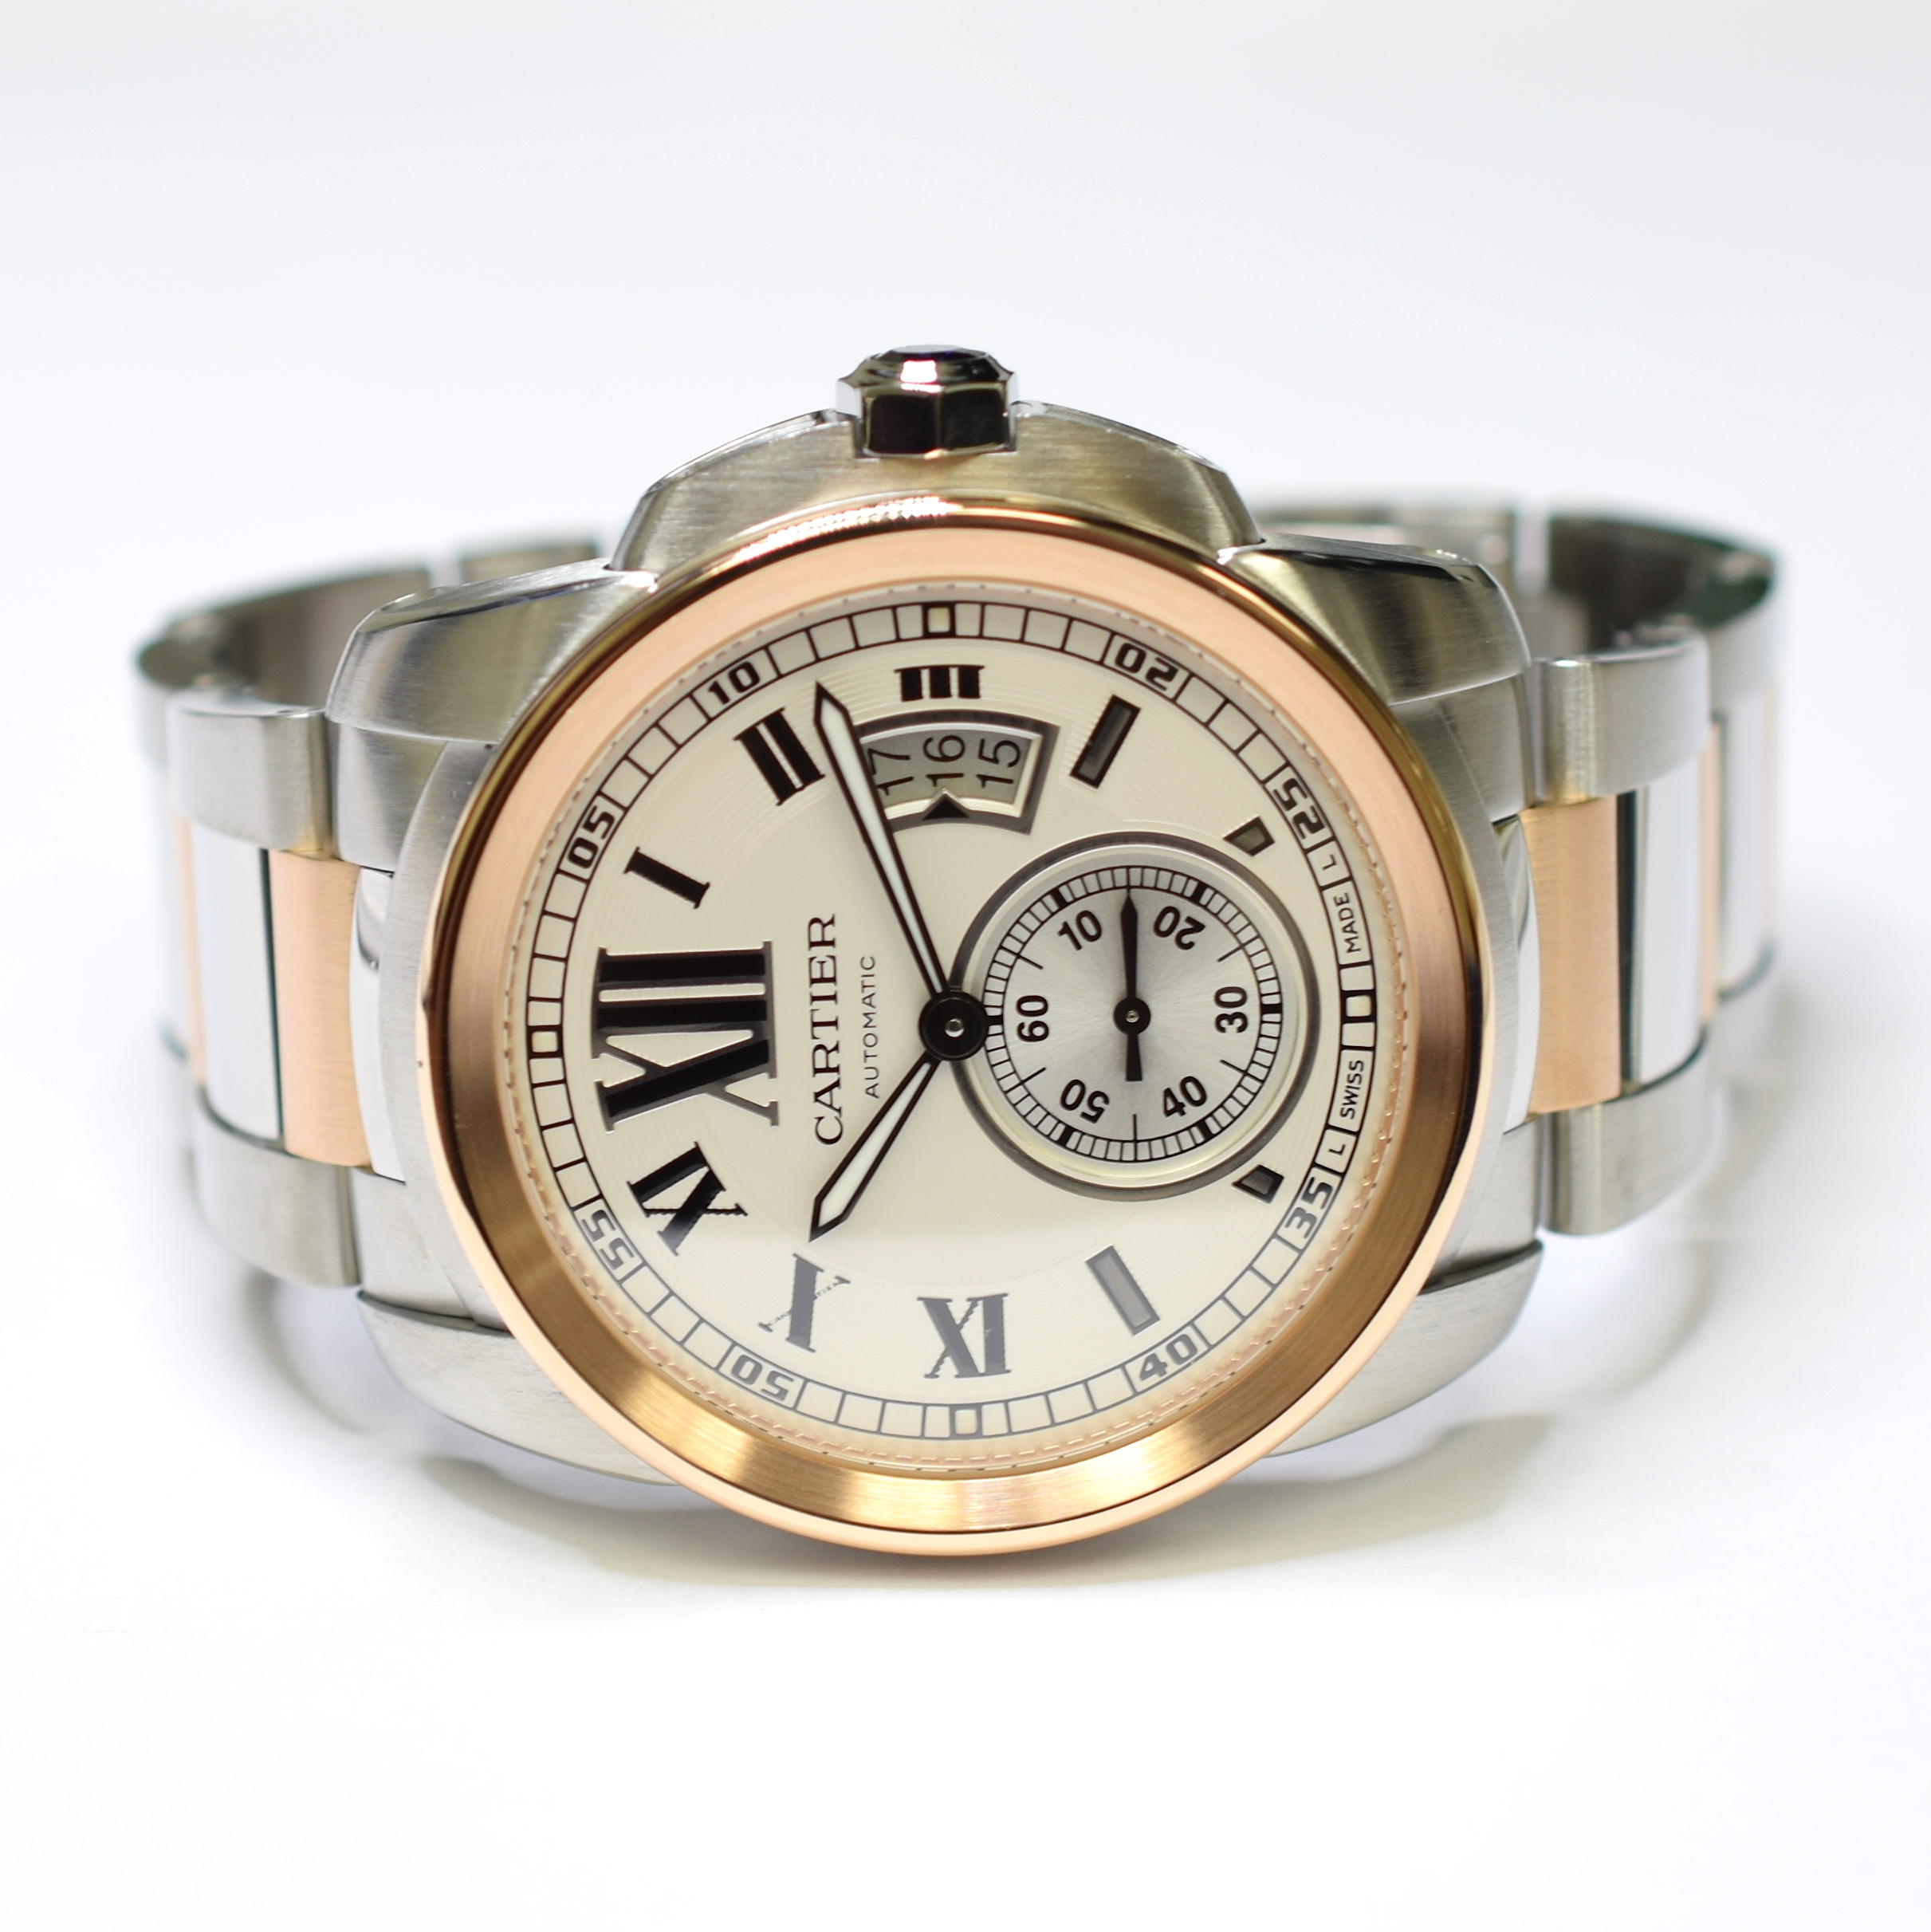 810f9f9547b Image 1 of 3. Cartier Calibre de Cartier 42m Stainless Steel and 18K Gold Watch  3389